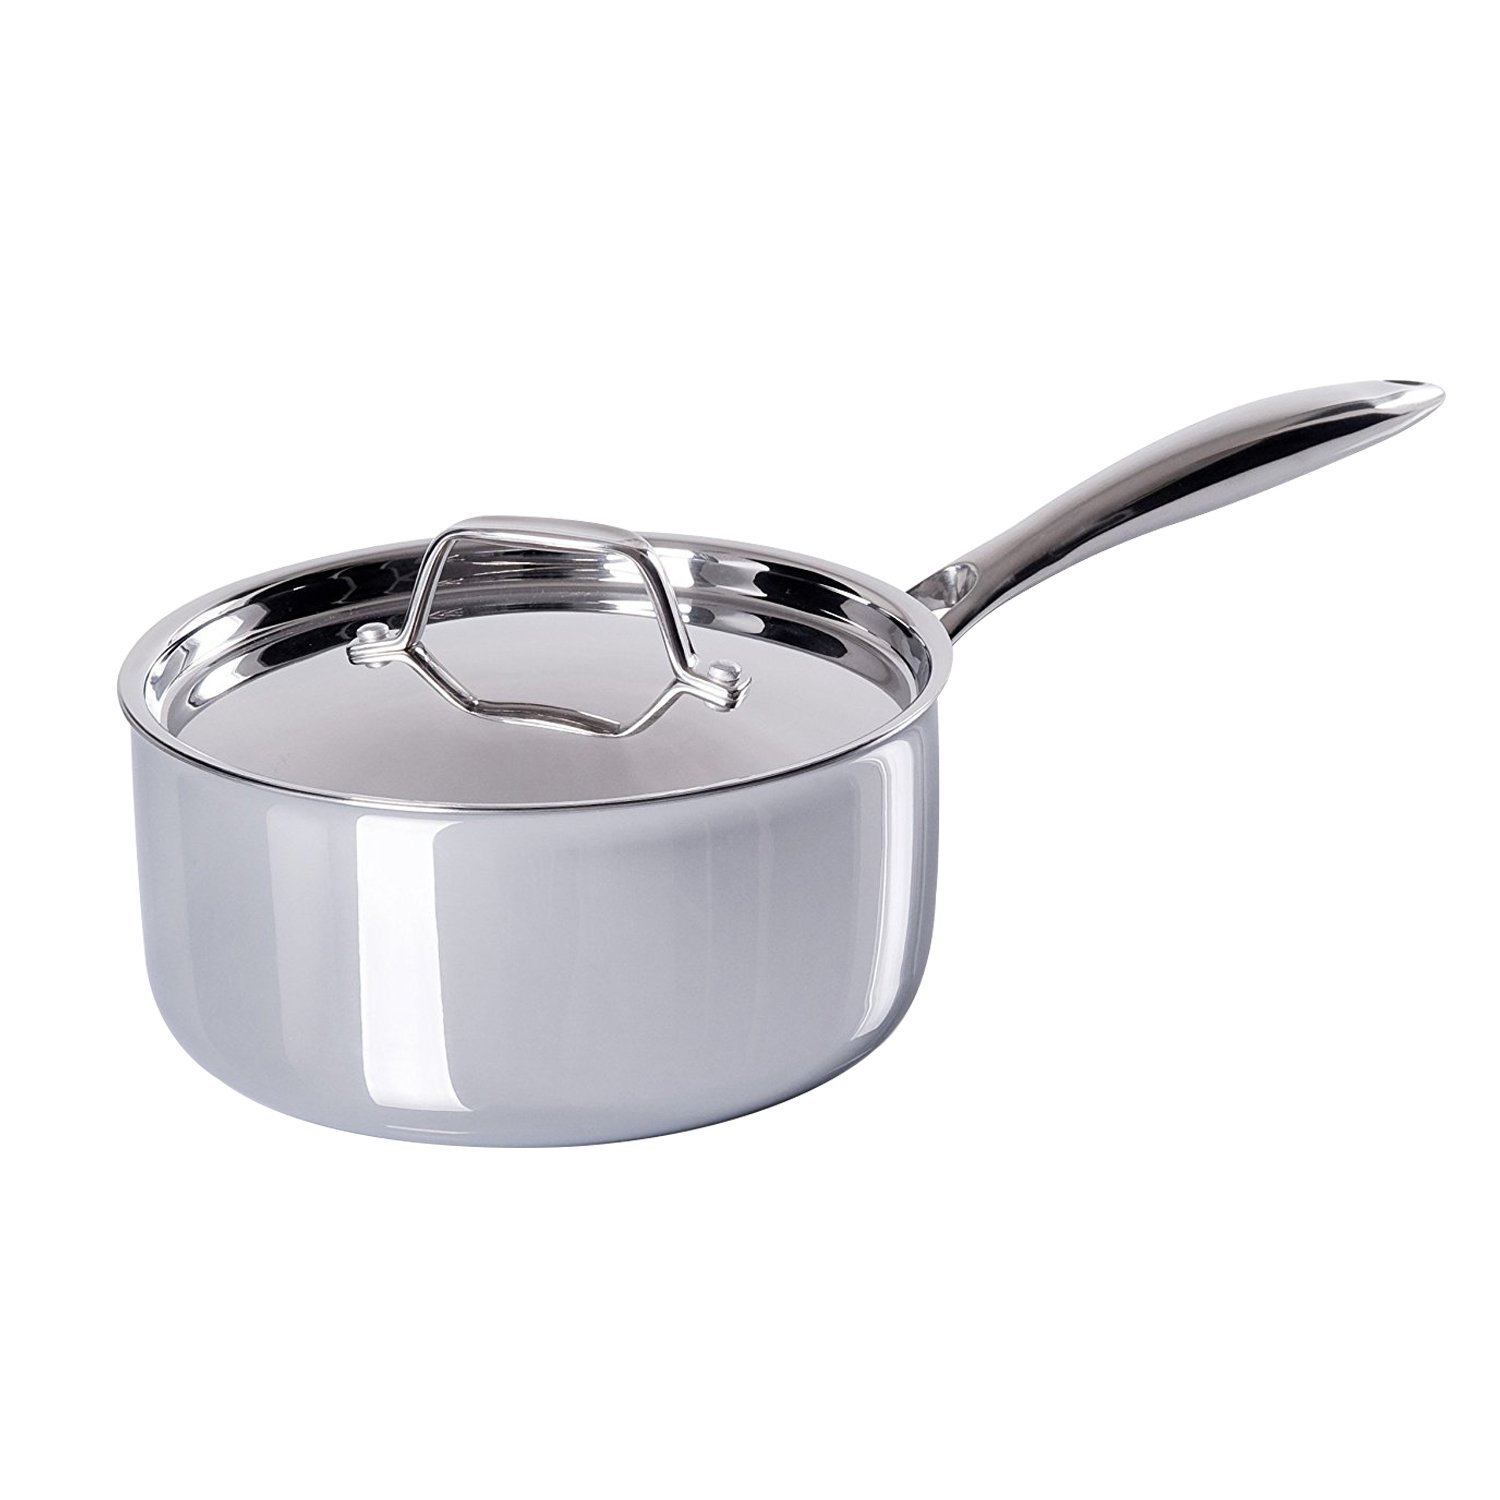 Secura Duxtop Whole-Clad Tri-Ply Stainless Steel Induction Ready Premium Cookware with Lid, 3 Quart